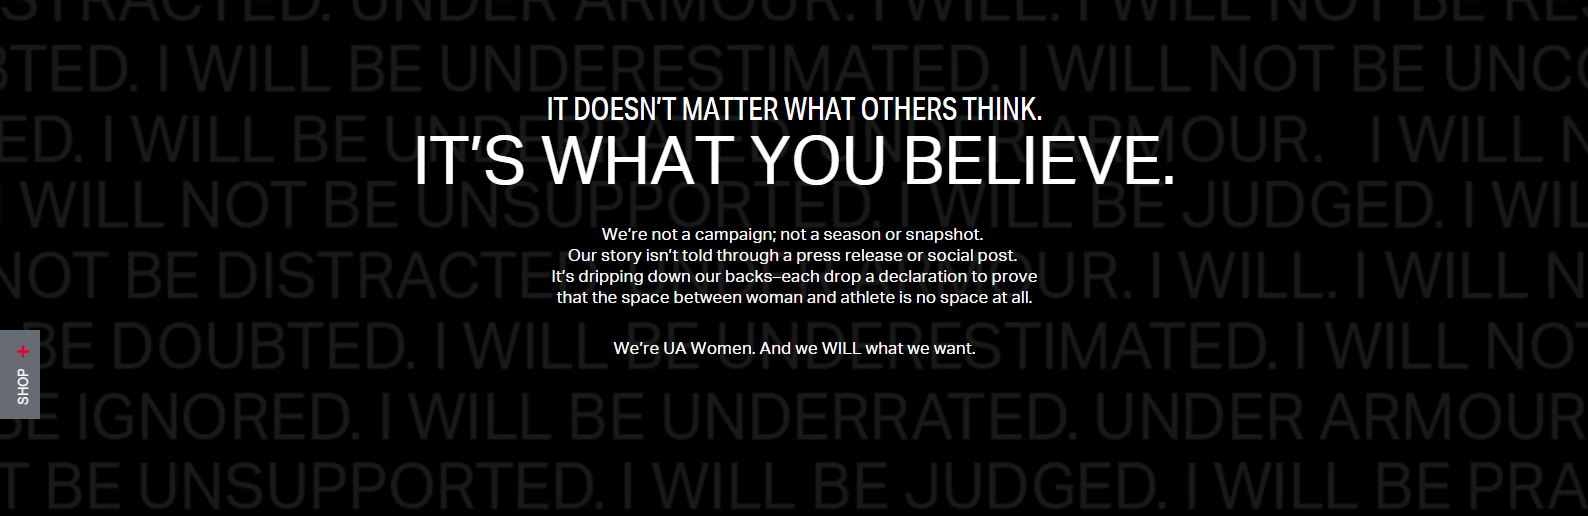 antipod smart ad of the week - under arnour I will what I want